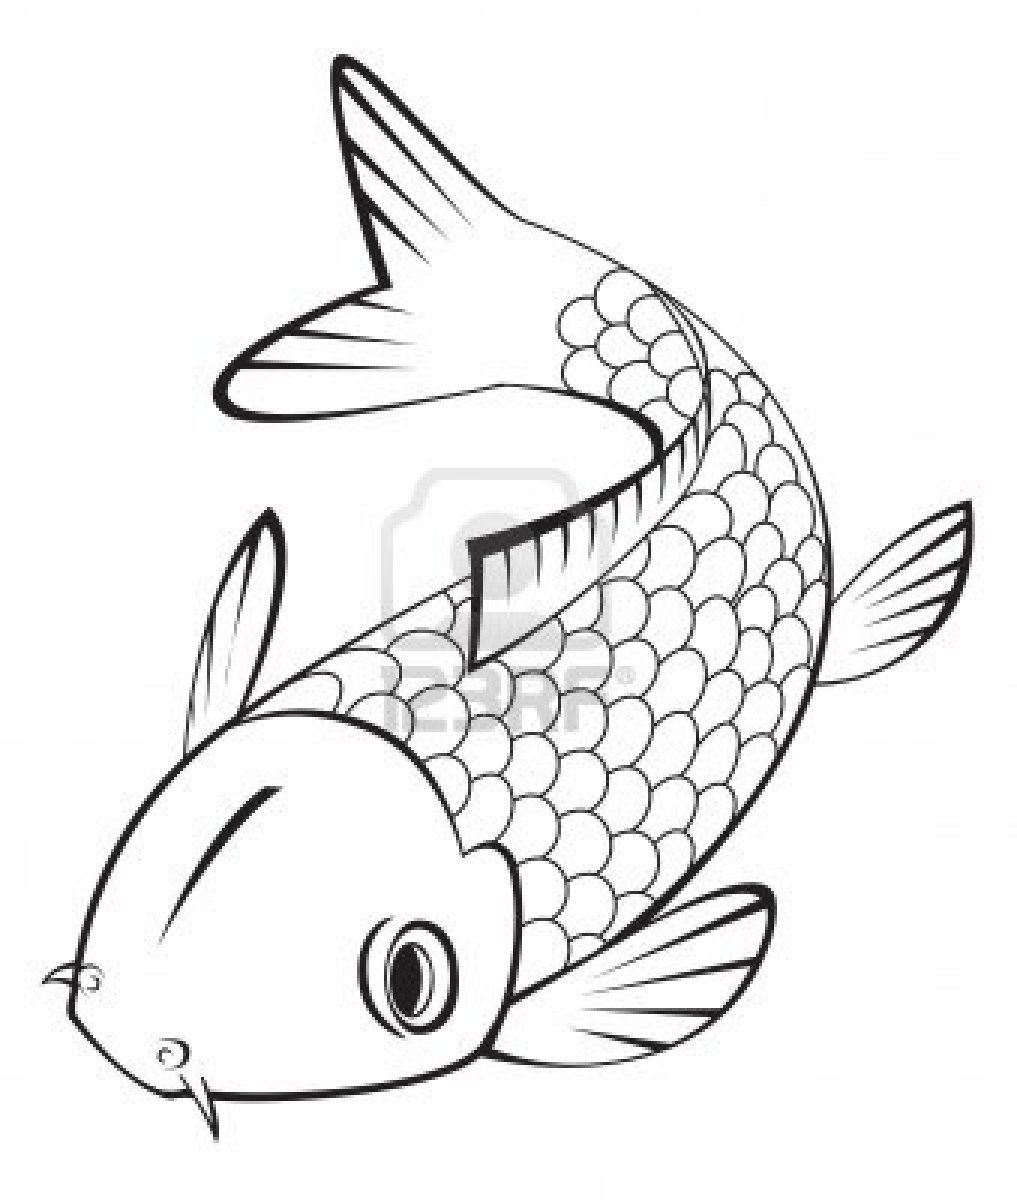 Download Koi Fish Coloring Pages Koi Water Lilies Pinterest